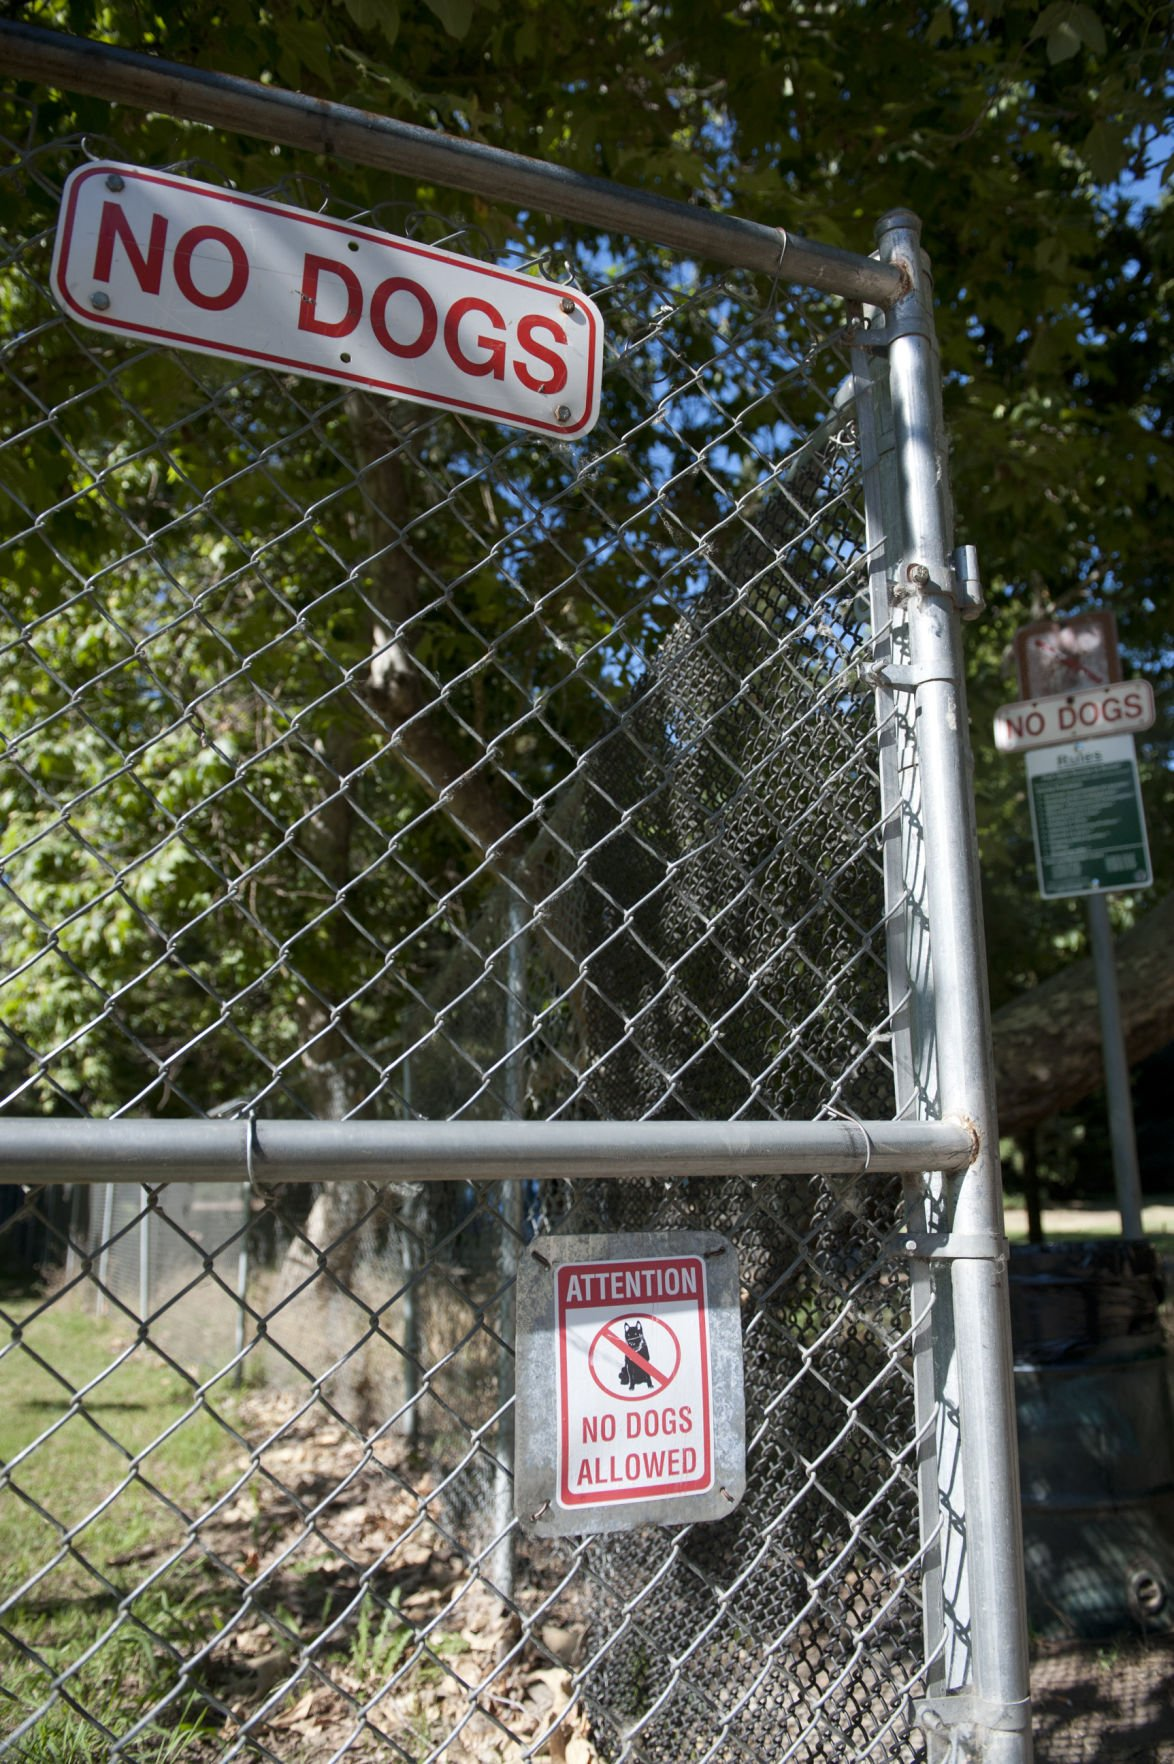 Dogs in Lodi Lake nature area cause concern